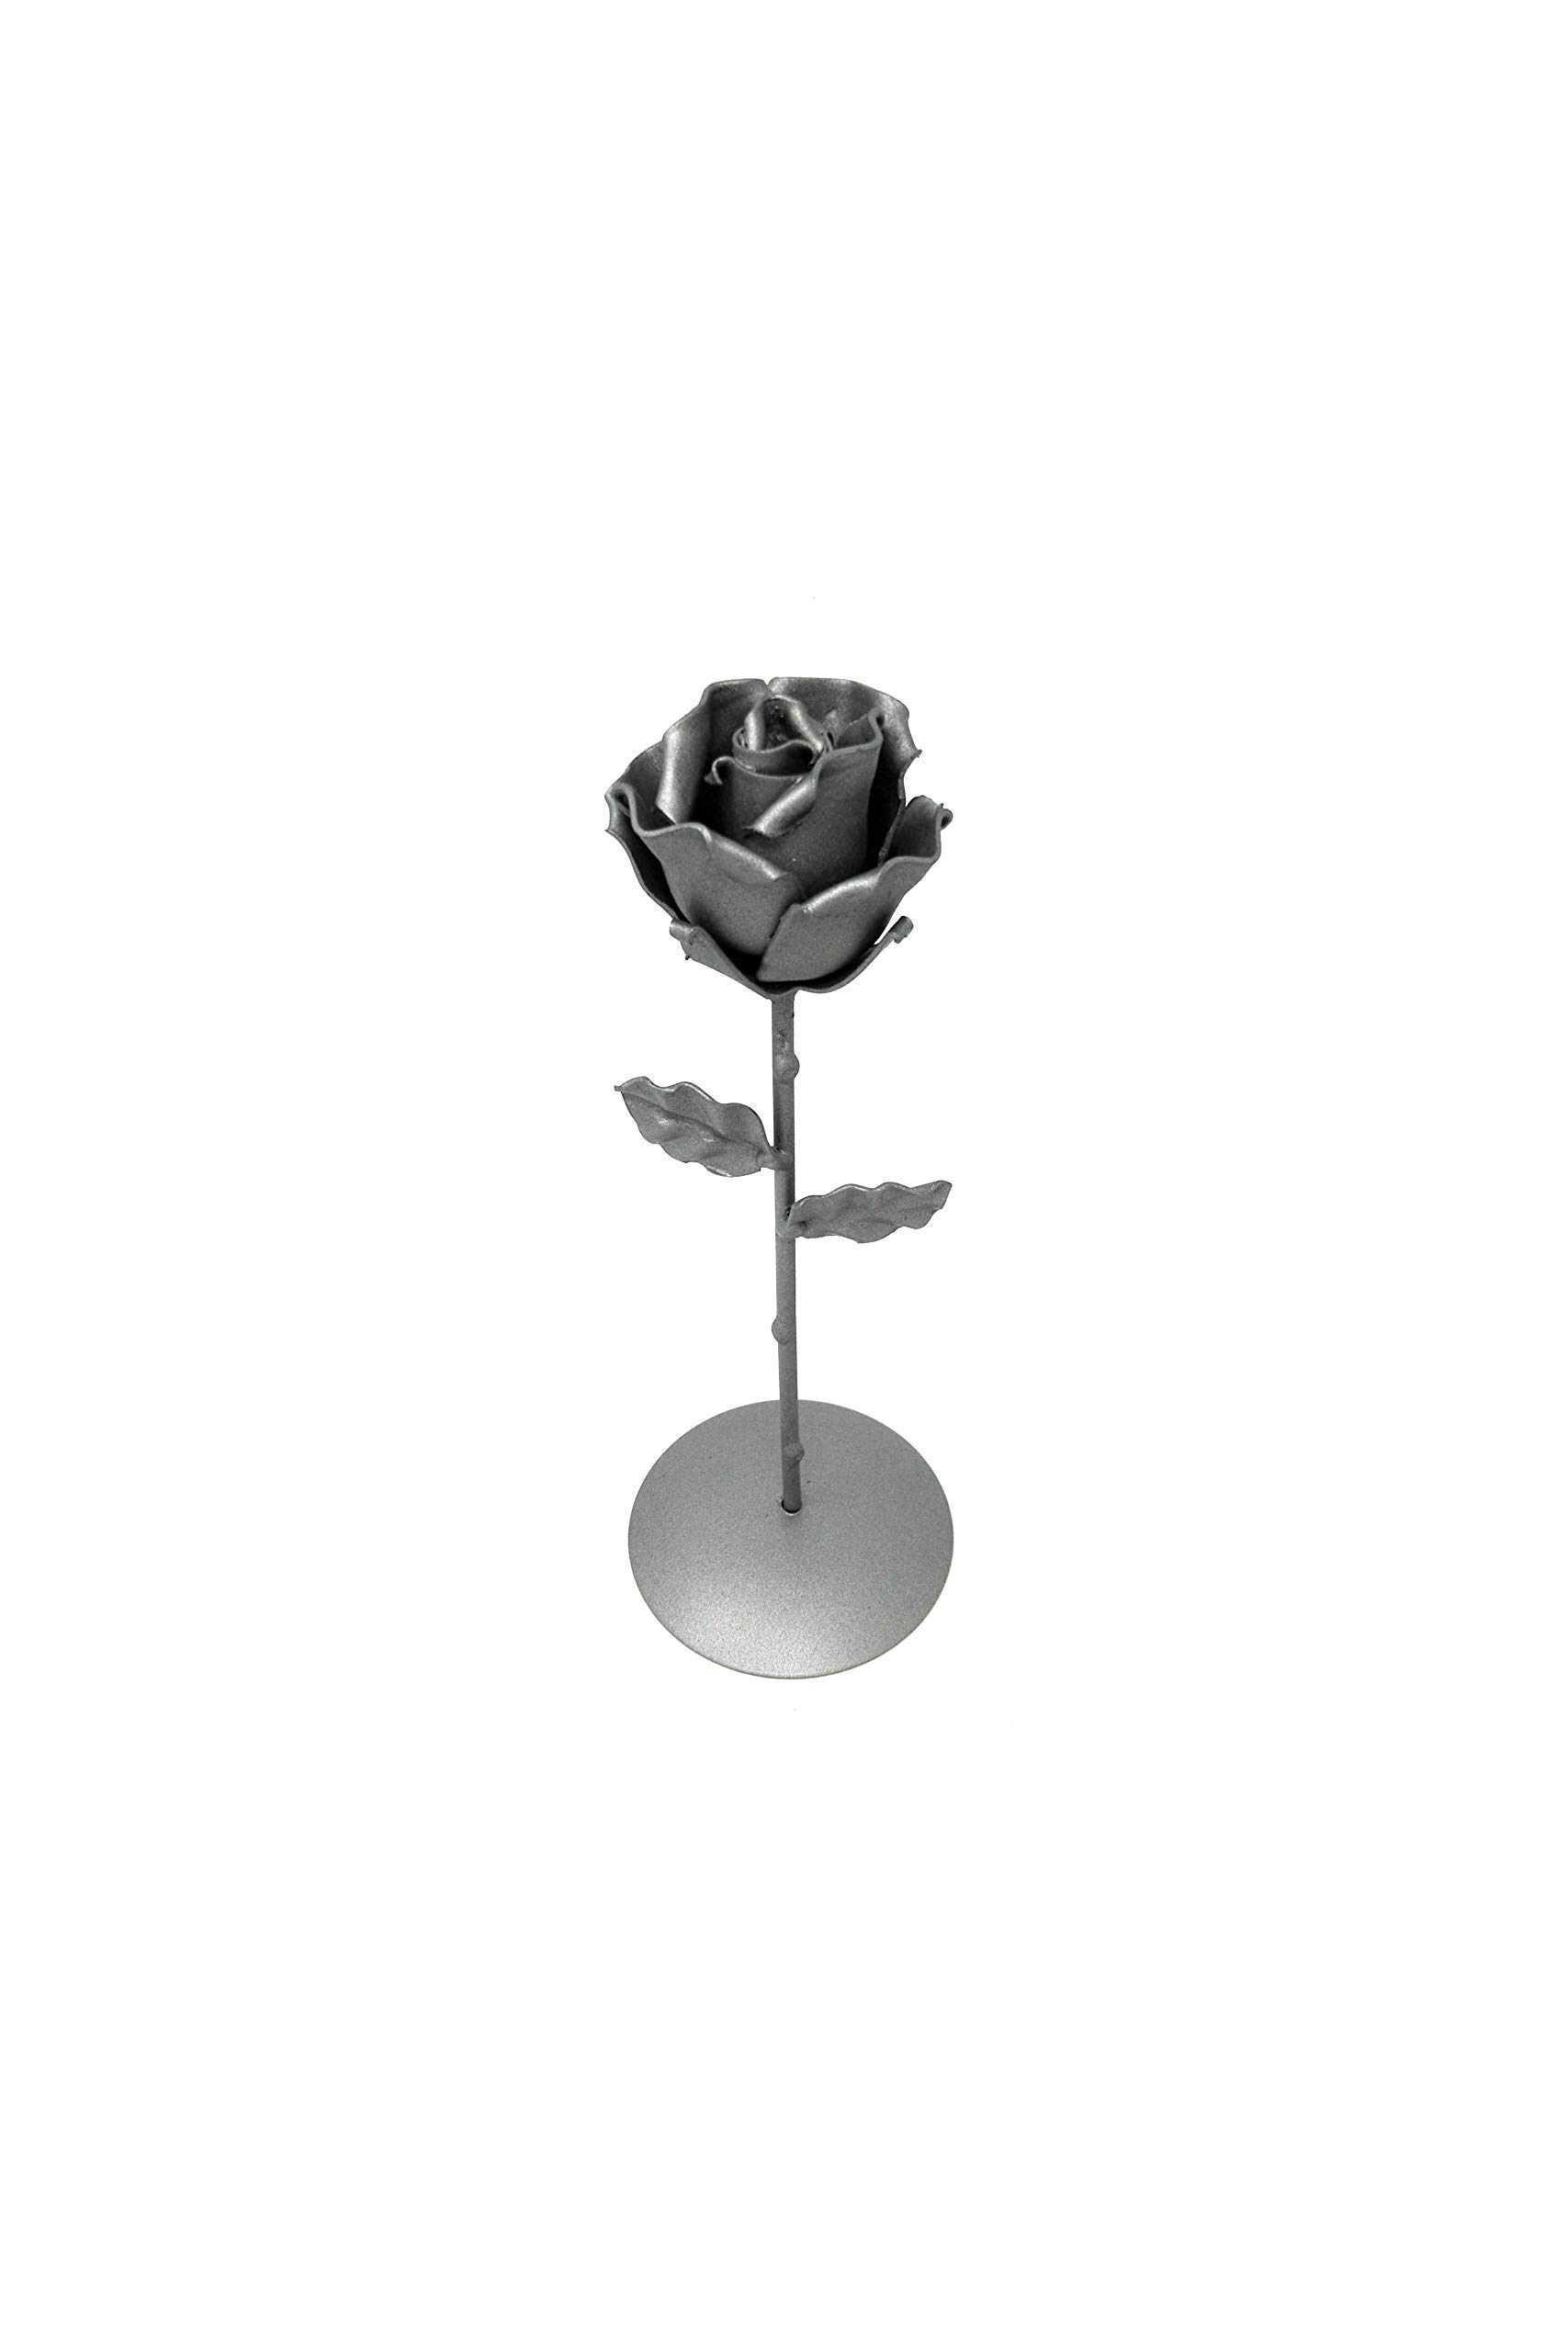 -Eternal-Rose-Hand-Forged-Wrought-Iron-Gray-with-BaseIdeal-gift-Valentines-Day-Girlfriend-Mothers-Day-Couple-Birthday-Christmas-Wedding-Day-Anniversary-Decor